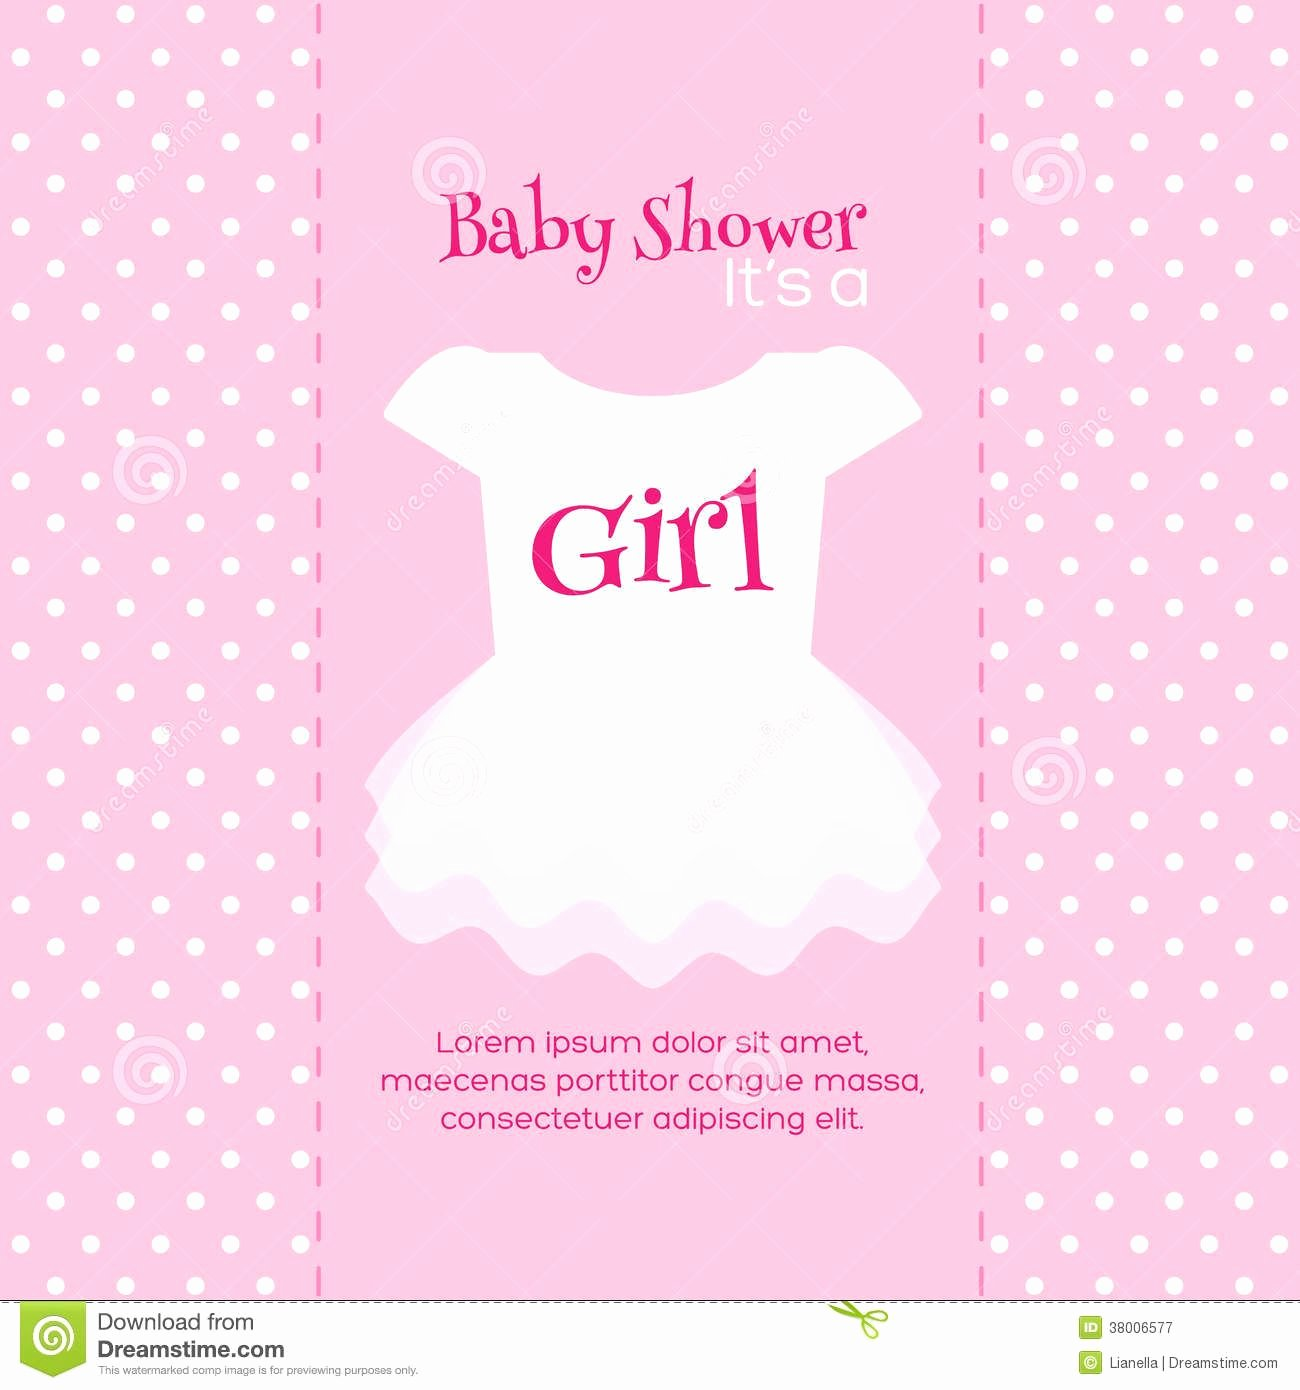 Free Baby Shower Invitation Templates Awesome Design Free Printable Baby Shower Invitations for Girls